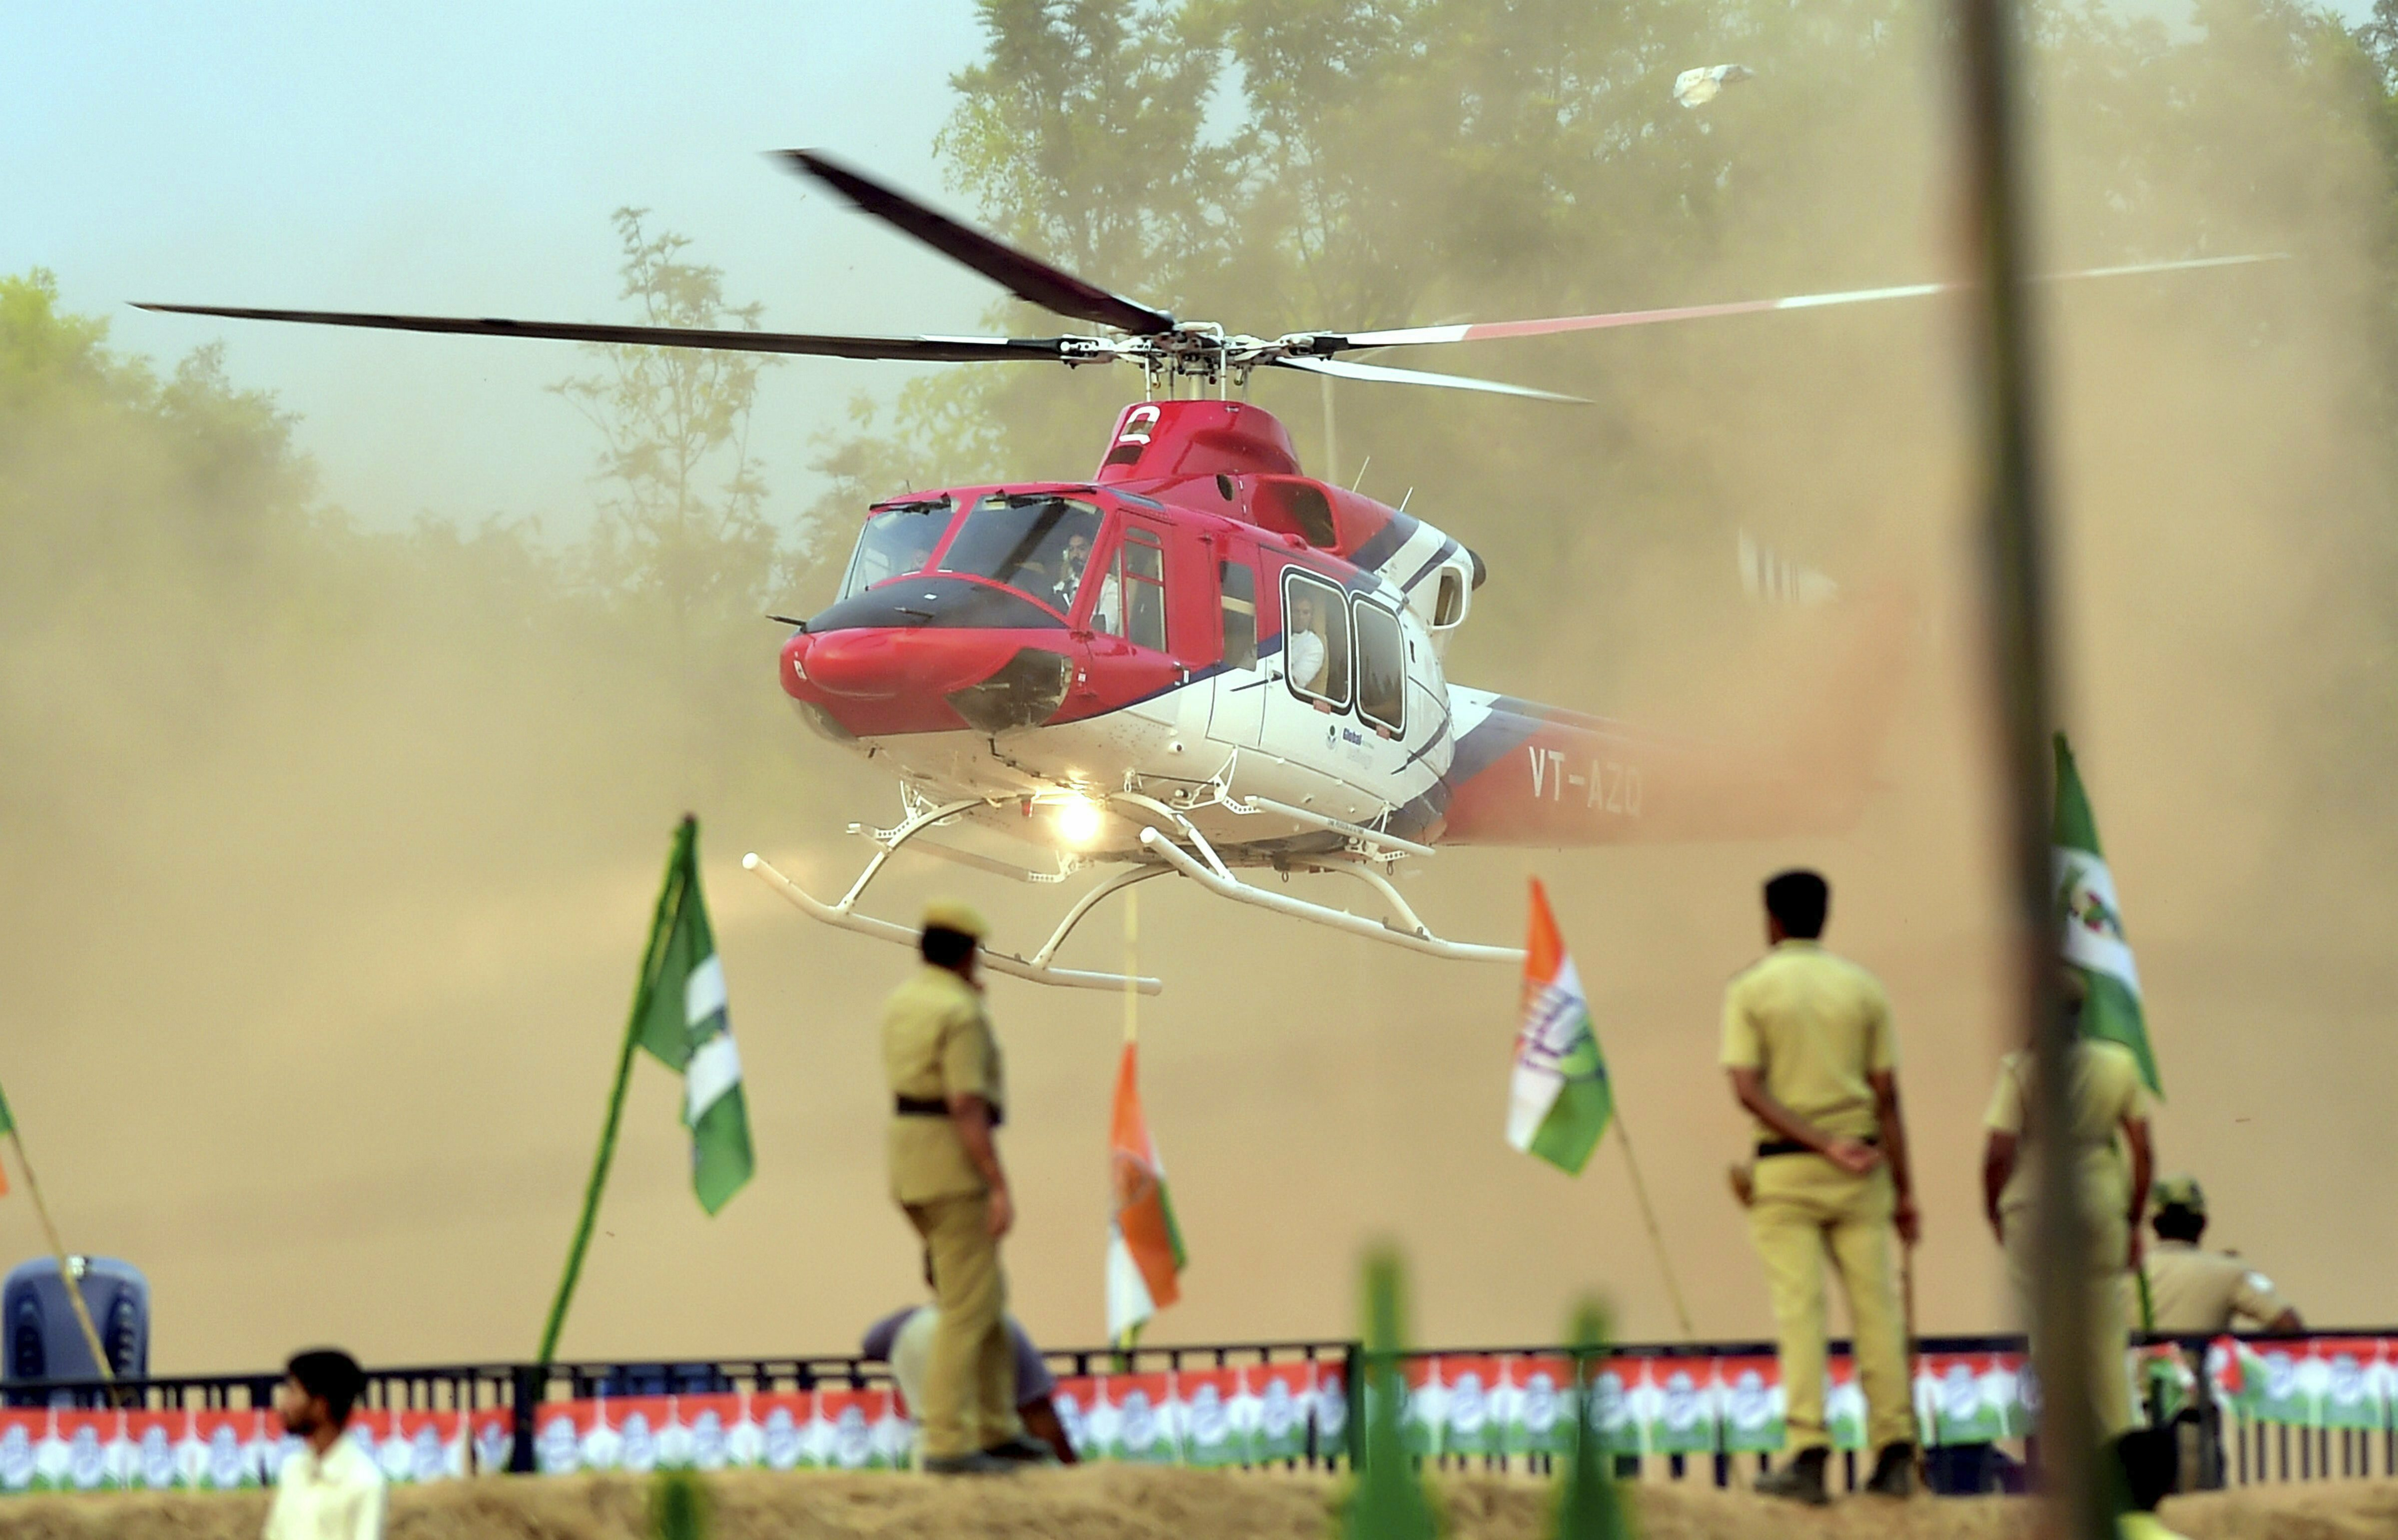 Congress President Rahul Gandhi arrives in a helicopter for the Congress-JD(S) rally ahead of Lok Sabha election in Bengaluru - AP